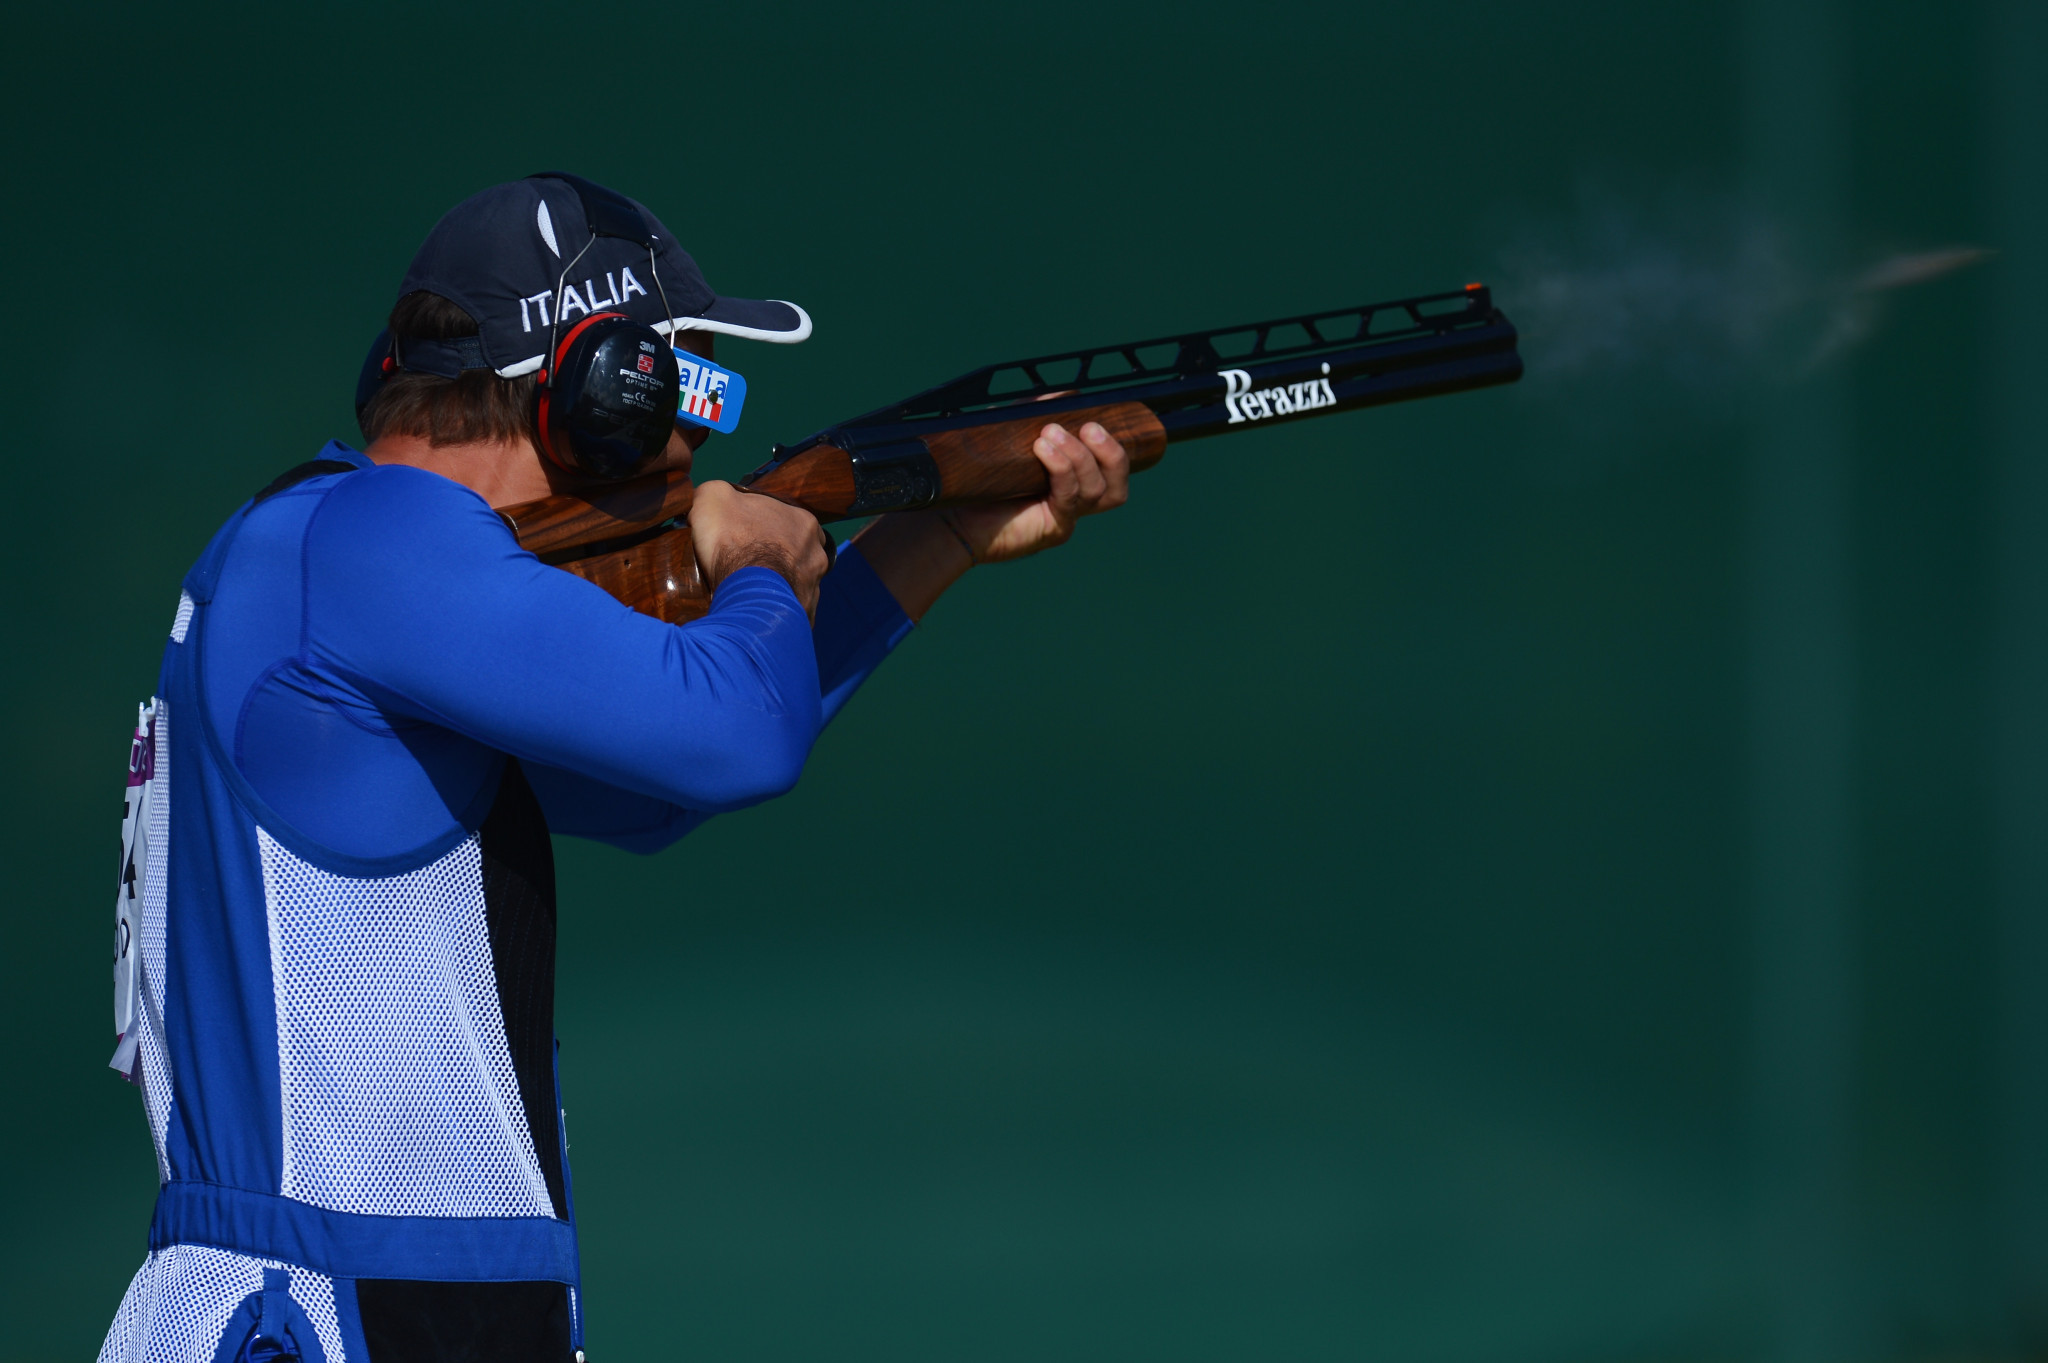 Di Spigno leads Italian podium sweep in men's double trap at European Championship Shotgun